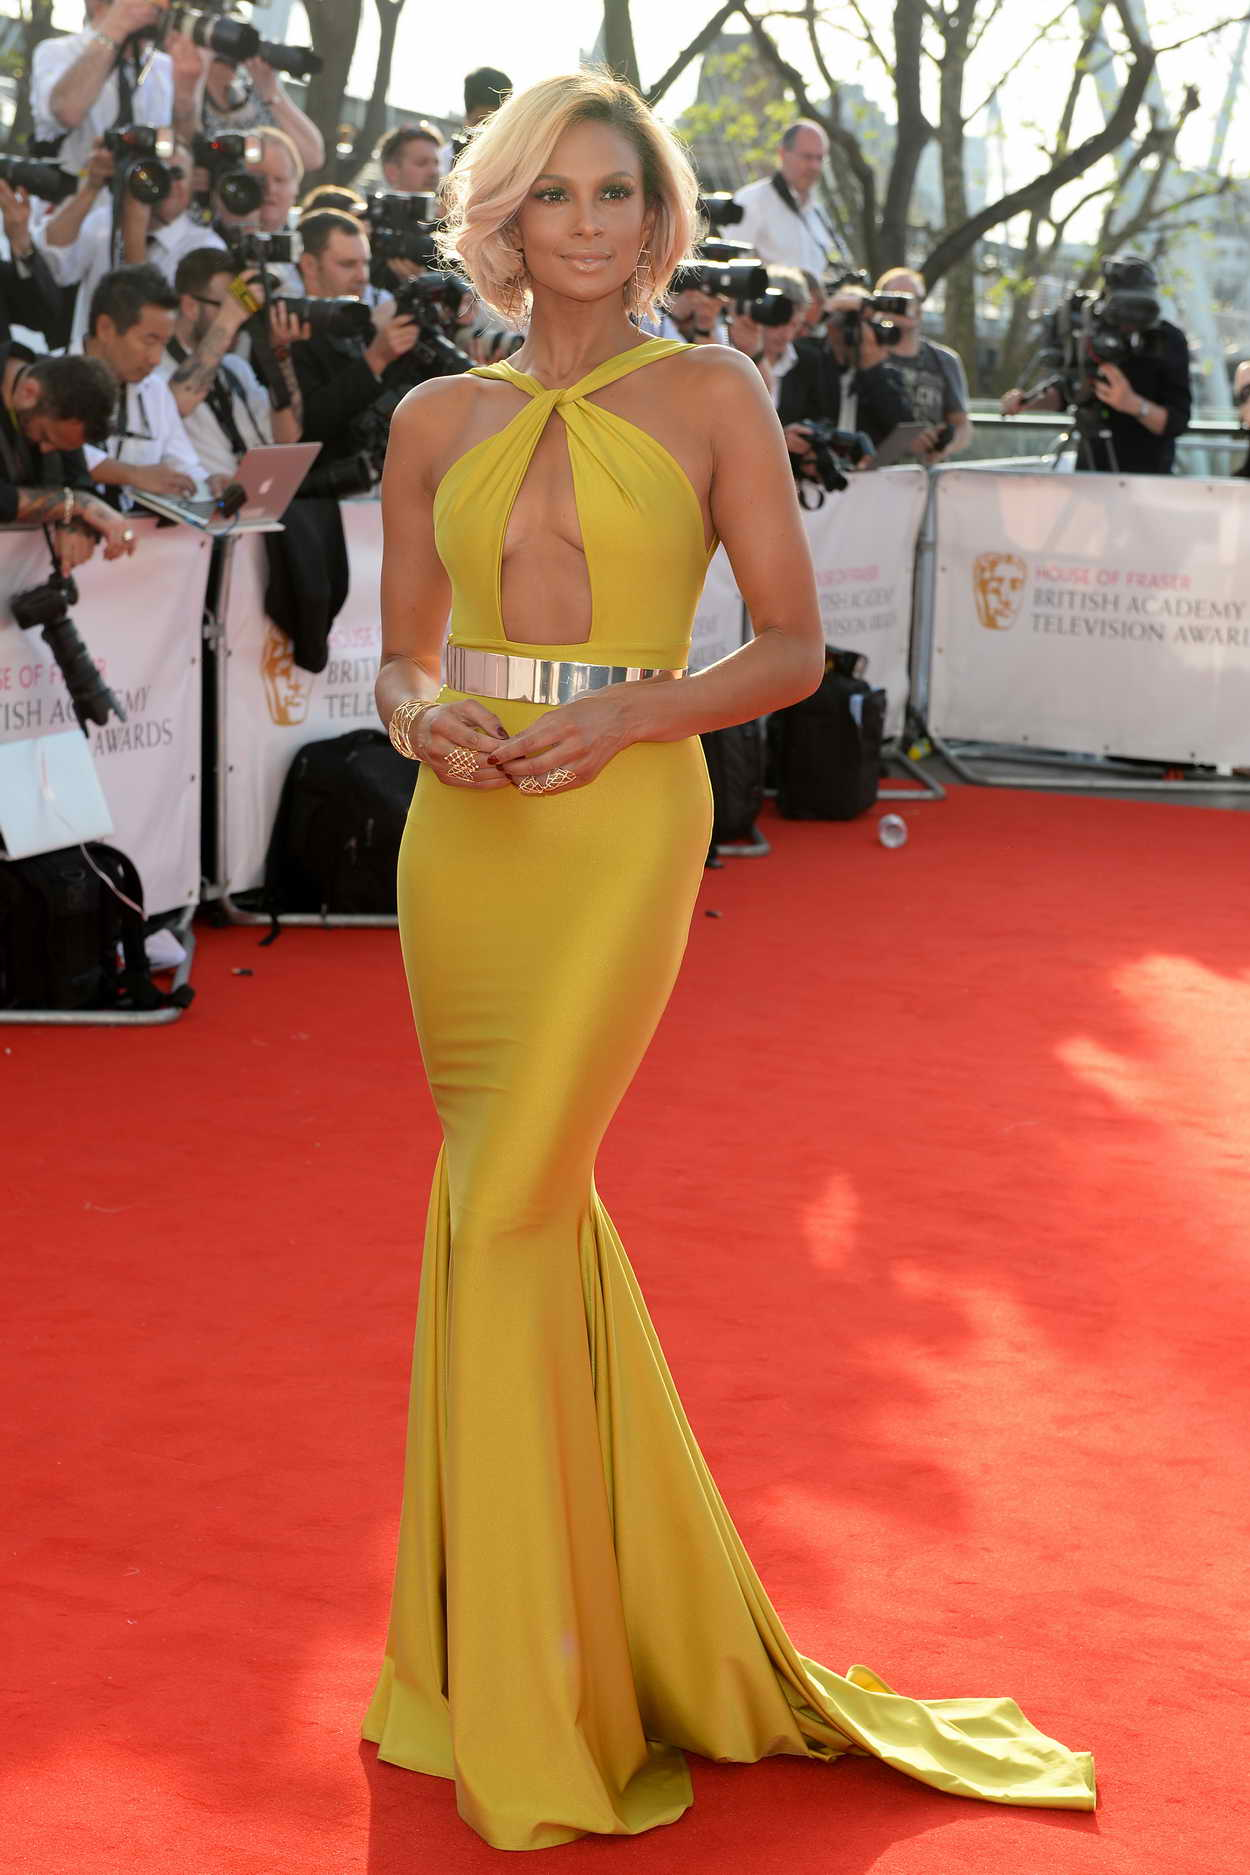 Alesha Dixon At The House Of Fraser Bafta 2016 At Royal Festival Hall In London 05 08 2016